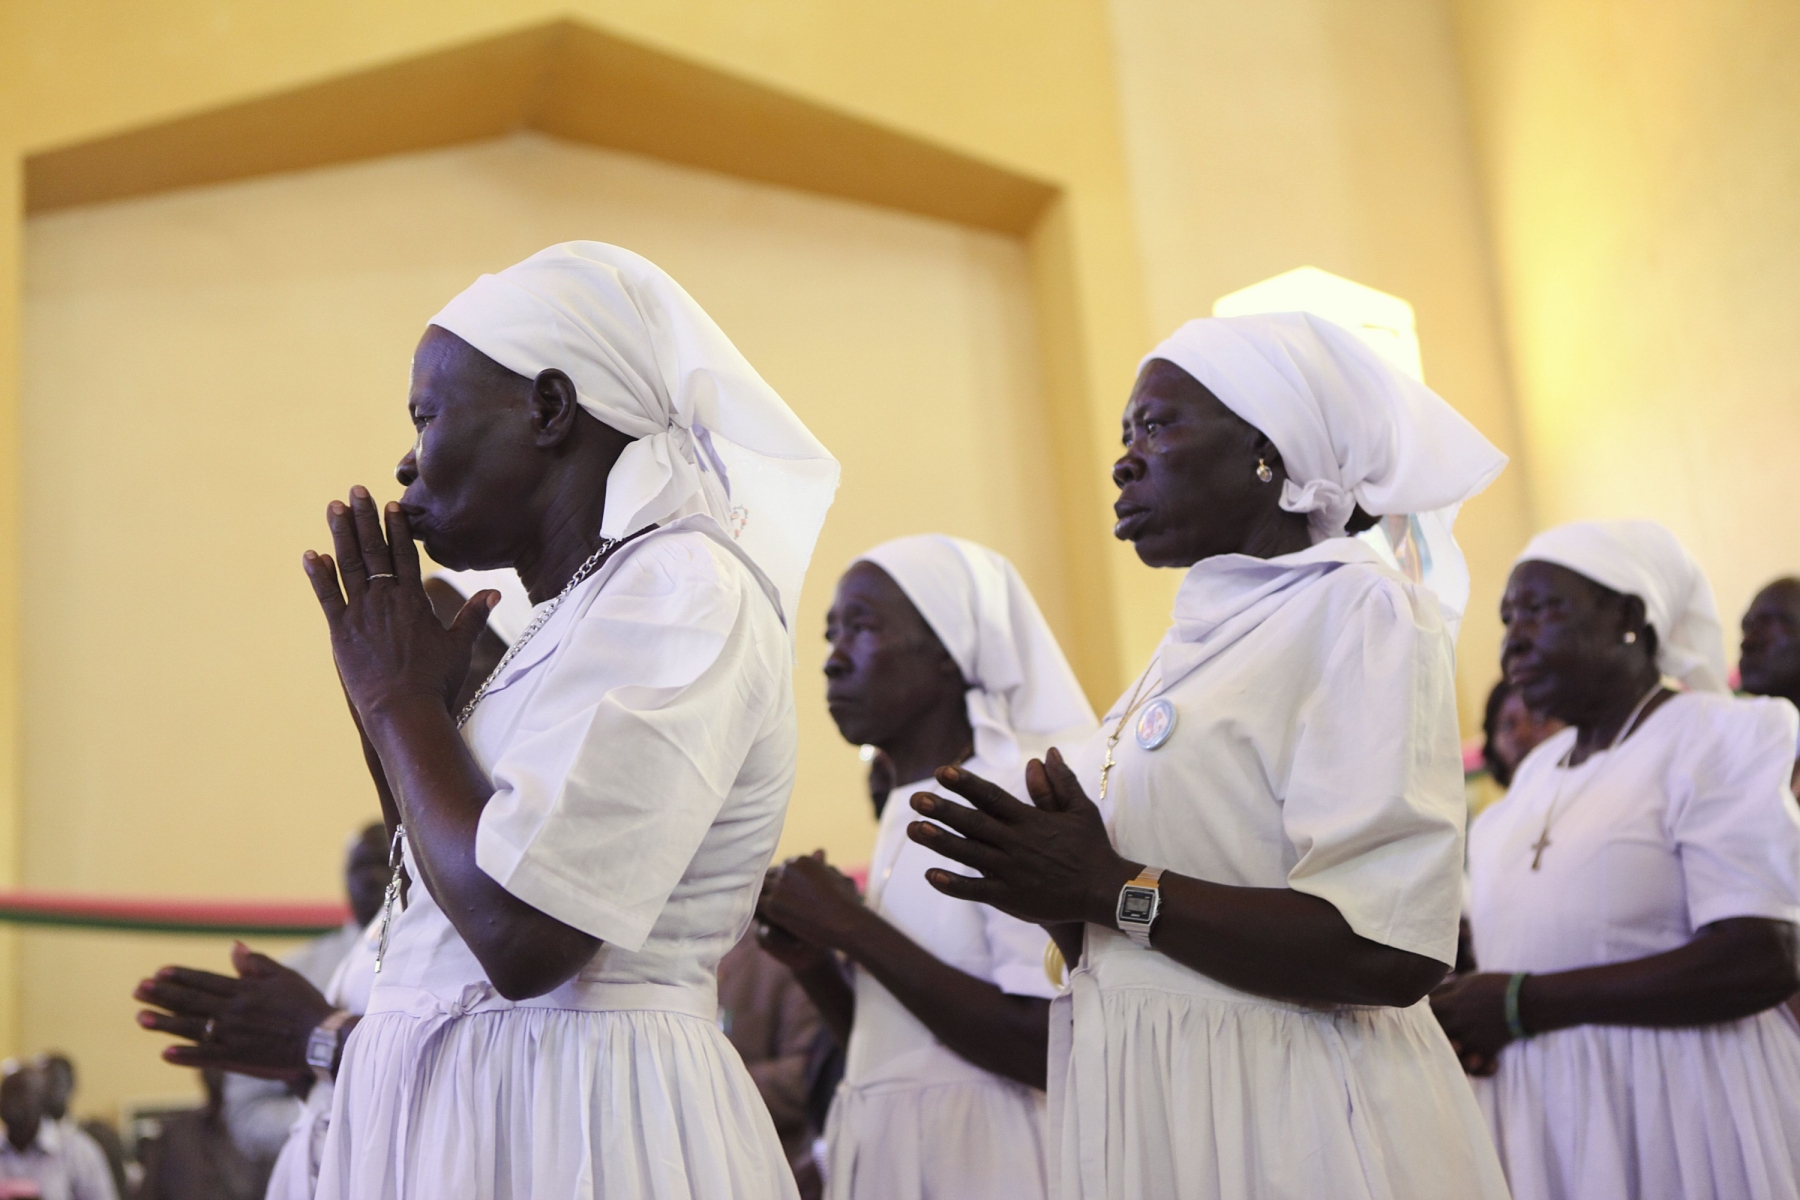 Worshipers at the cathedral in Juba, South Sudan. By Sara Fajardo/CRS